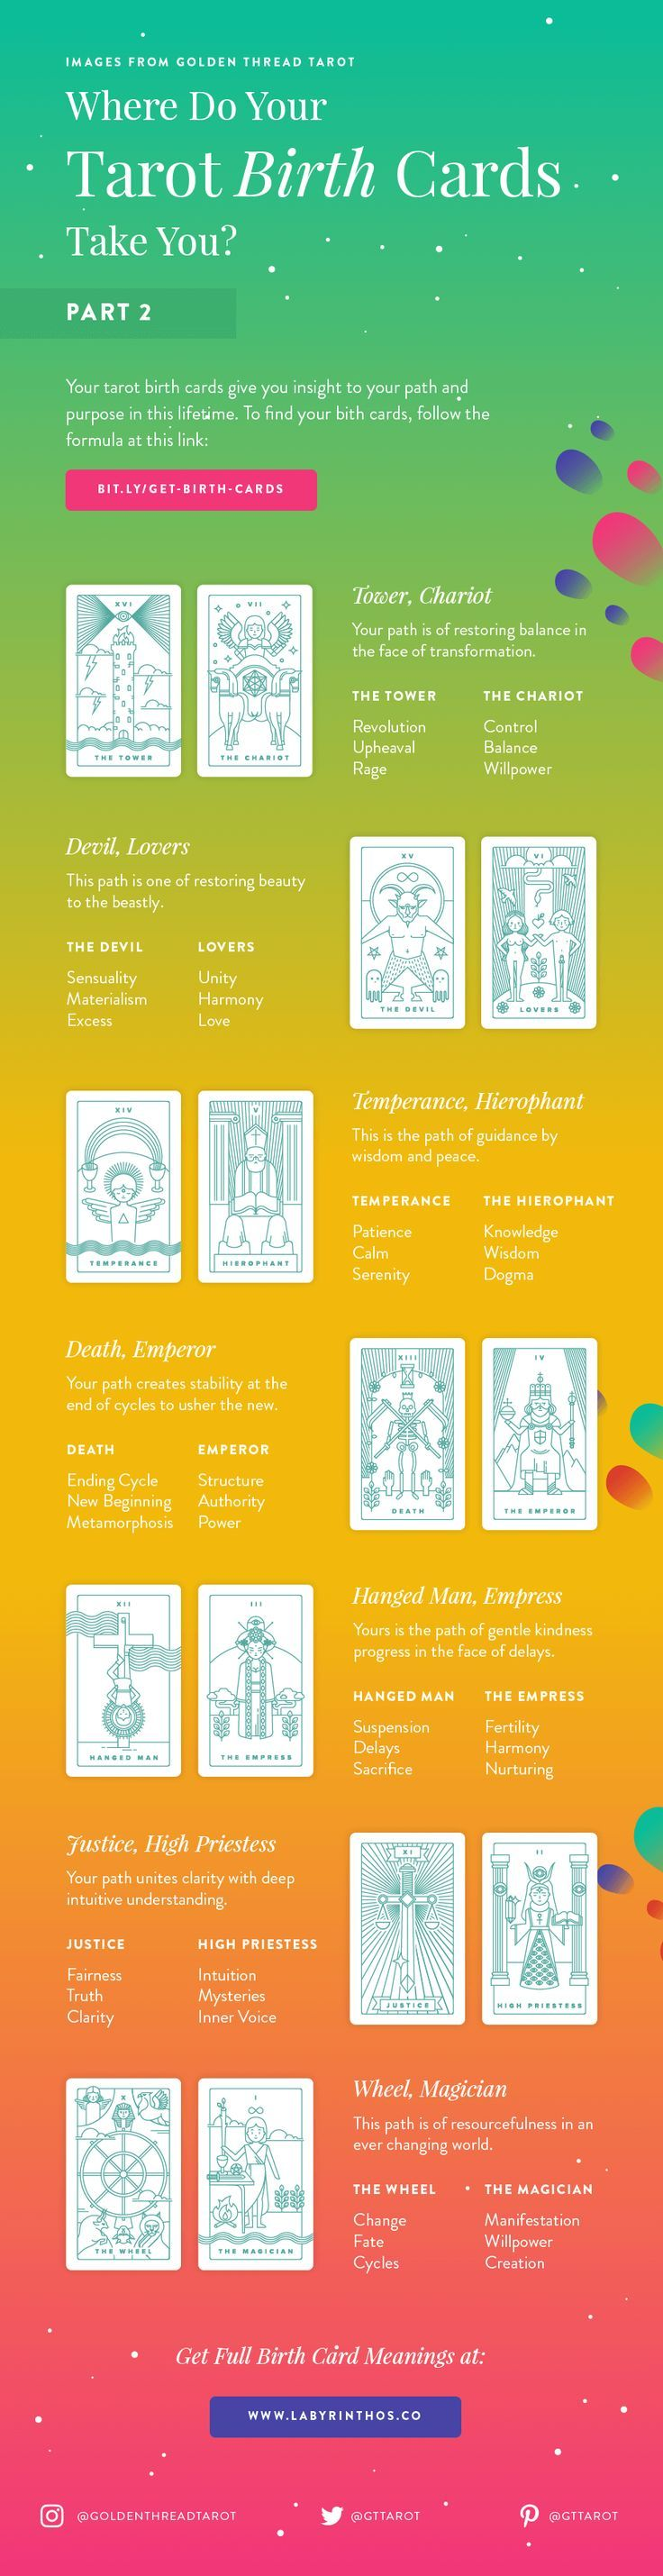 318 best numerology chart images on pinterest numerology numbers how to calculate your tarot birth card plus short birth card meanings infographic nvjuhfo Image collections